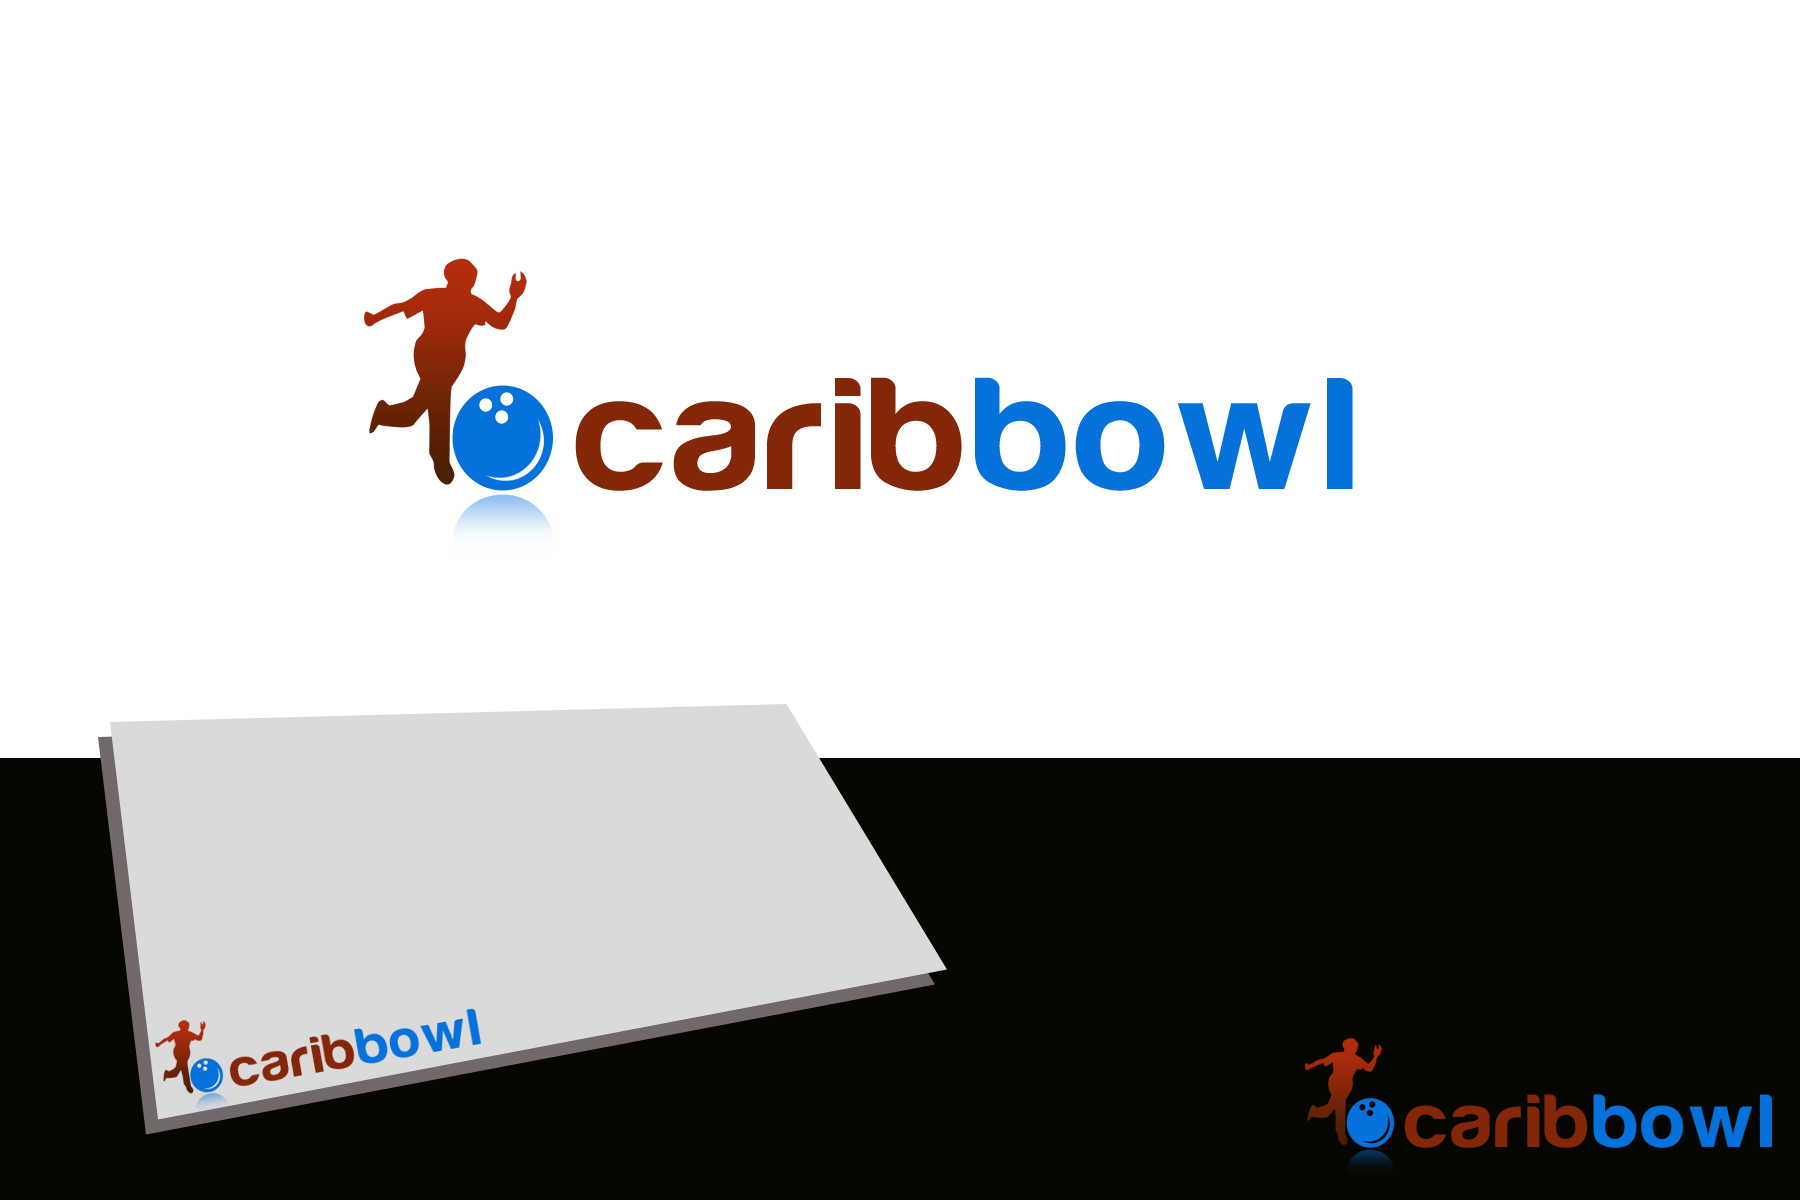 Logo Design by golden-hand - Entry No. 49 in the Logo Design Contest Fun Logo Design for Caribbowl.